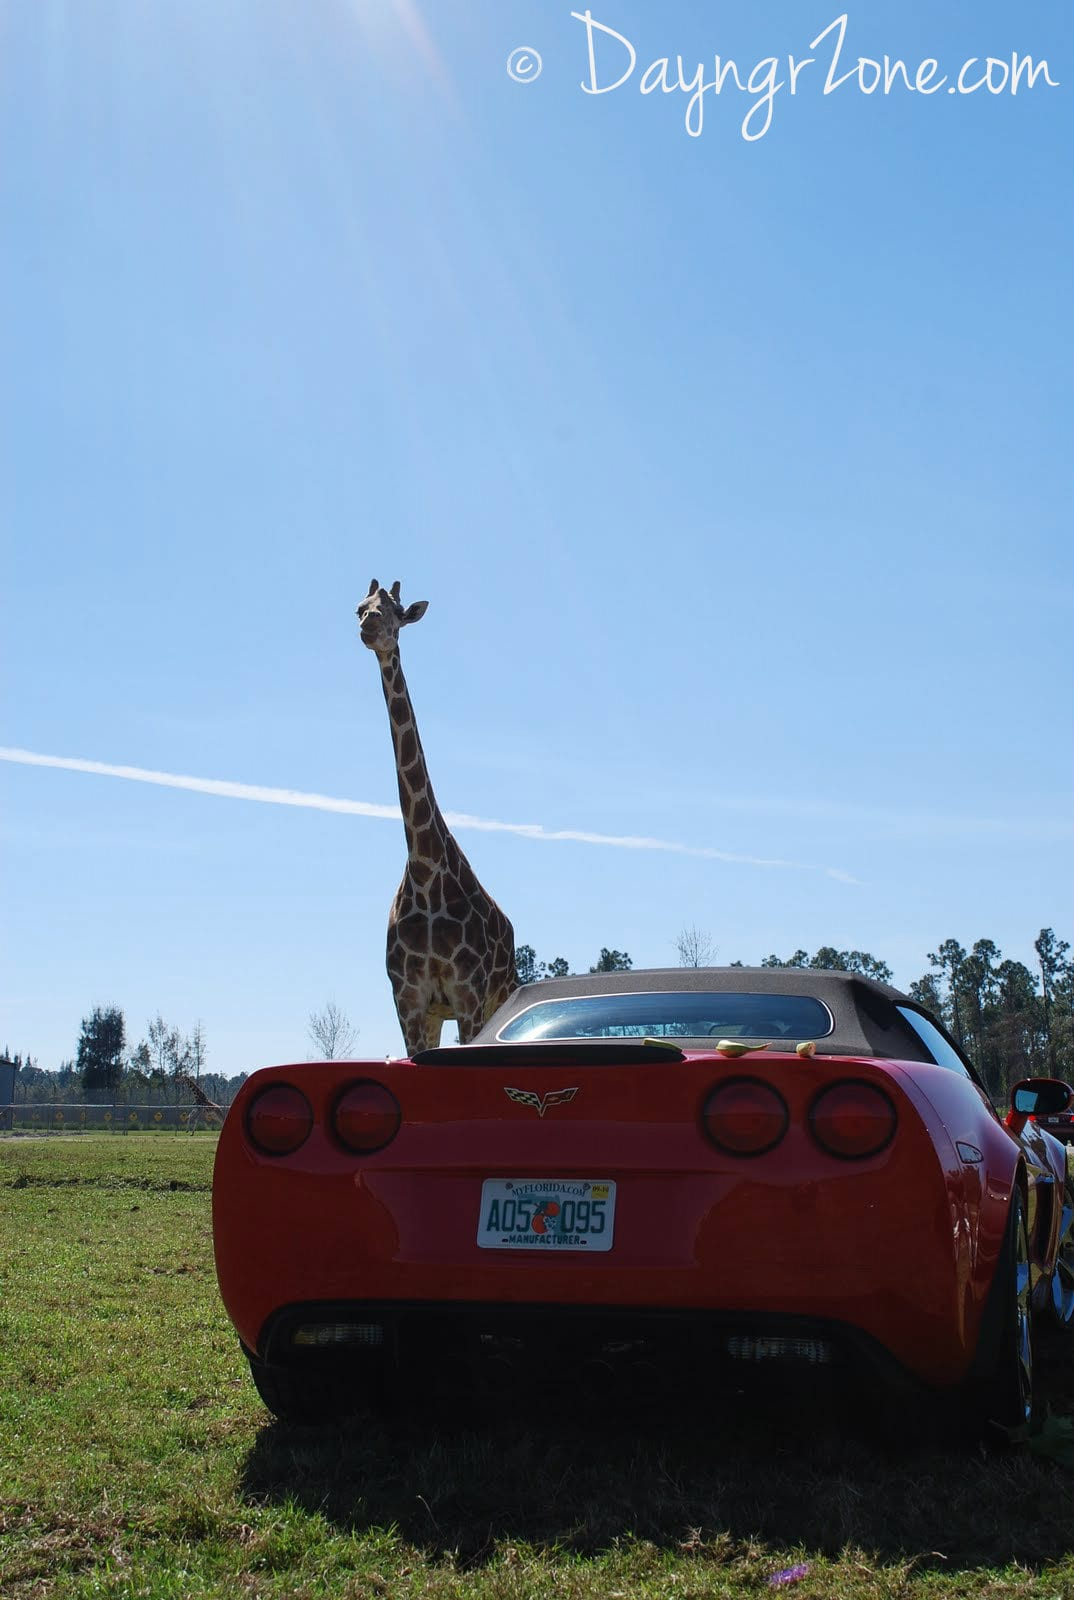 Giraffes and Corvettes